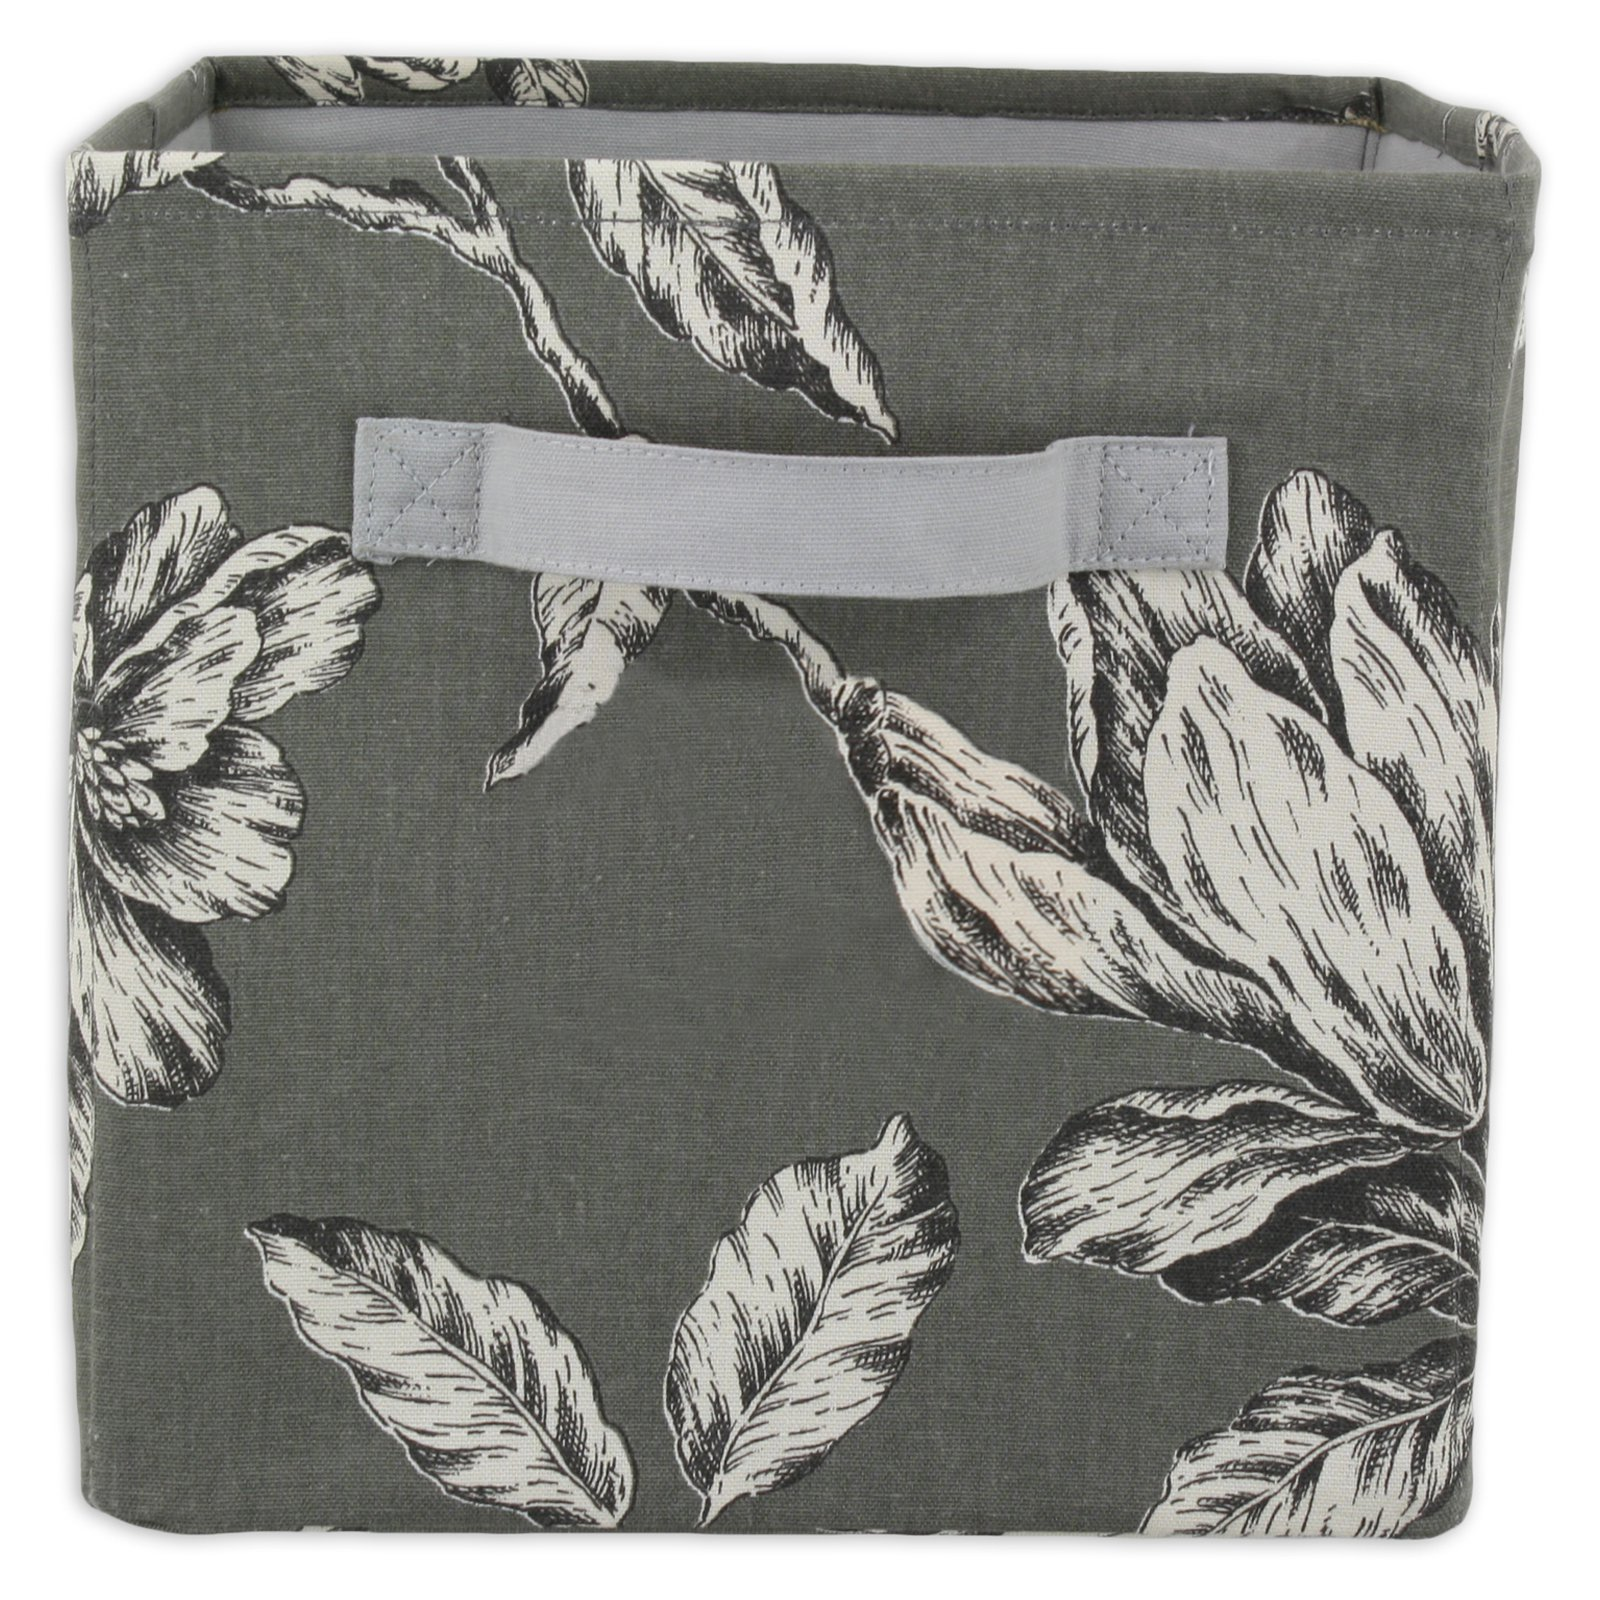 Brite Ideas Antebellum Graphite Storage Bin with Handle